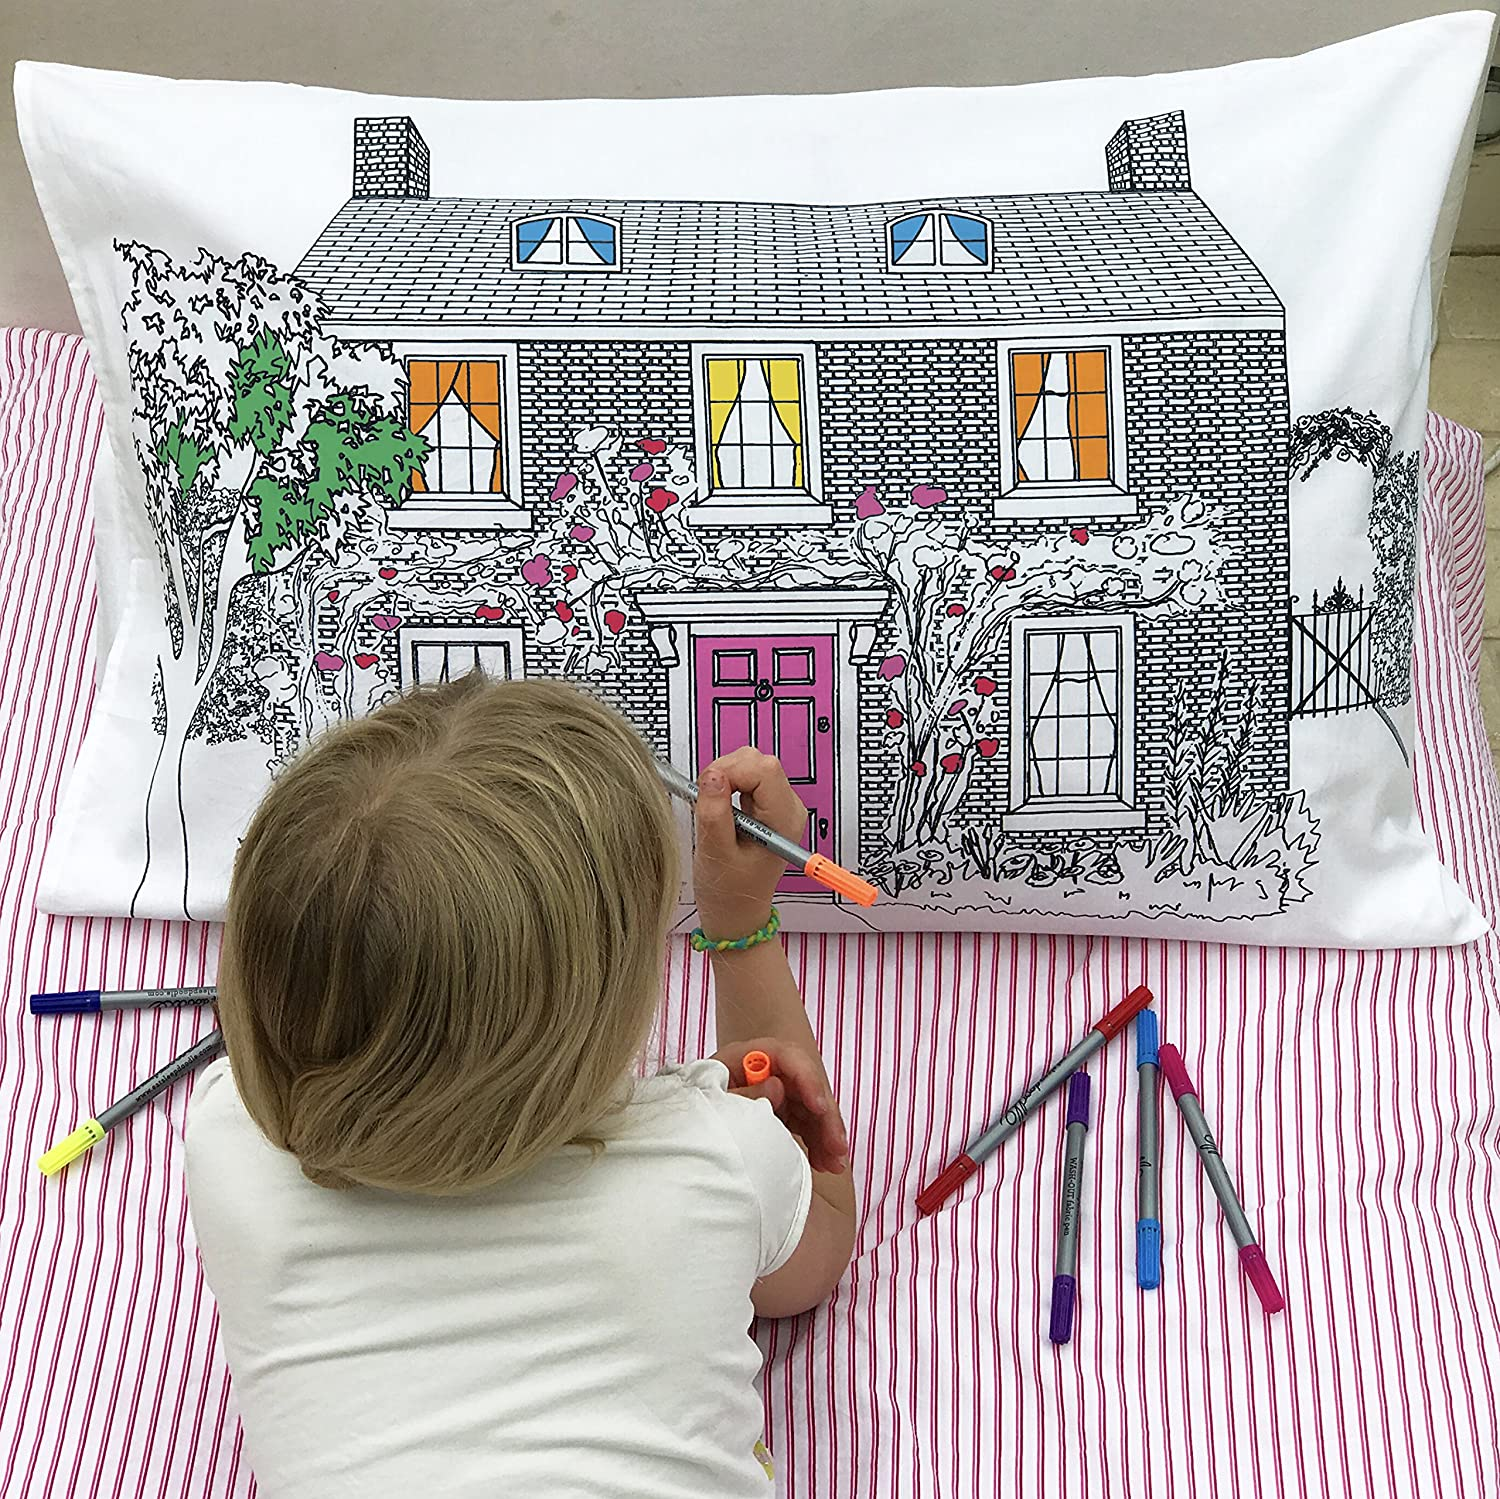 Eatsleepdoodle Doll House Doodle Pillowcase to Color and Design, Personalize The Living Space & Have Fun Decorating Your Home, Kids Coloring Pillowcase with Washable Felt Tip Fabric Markers